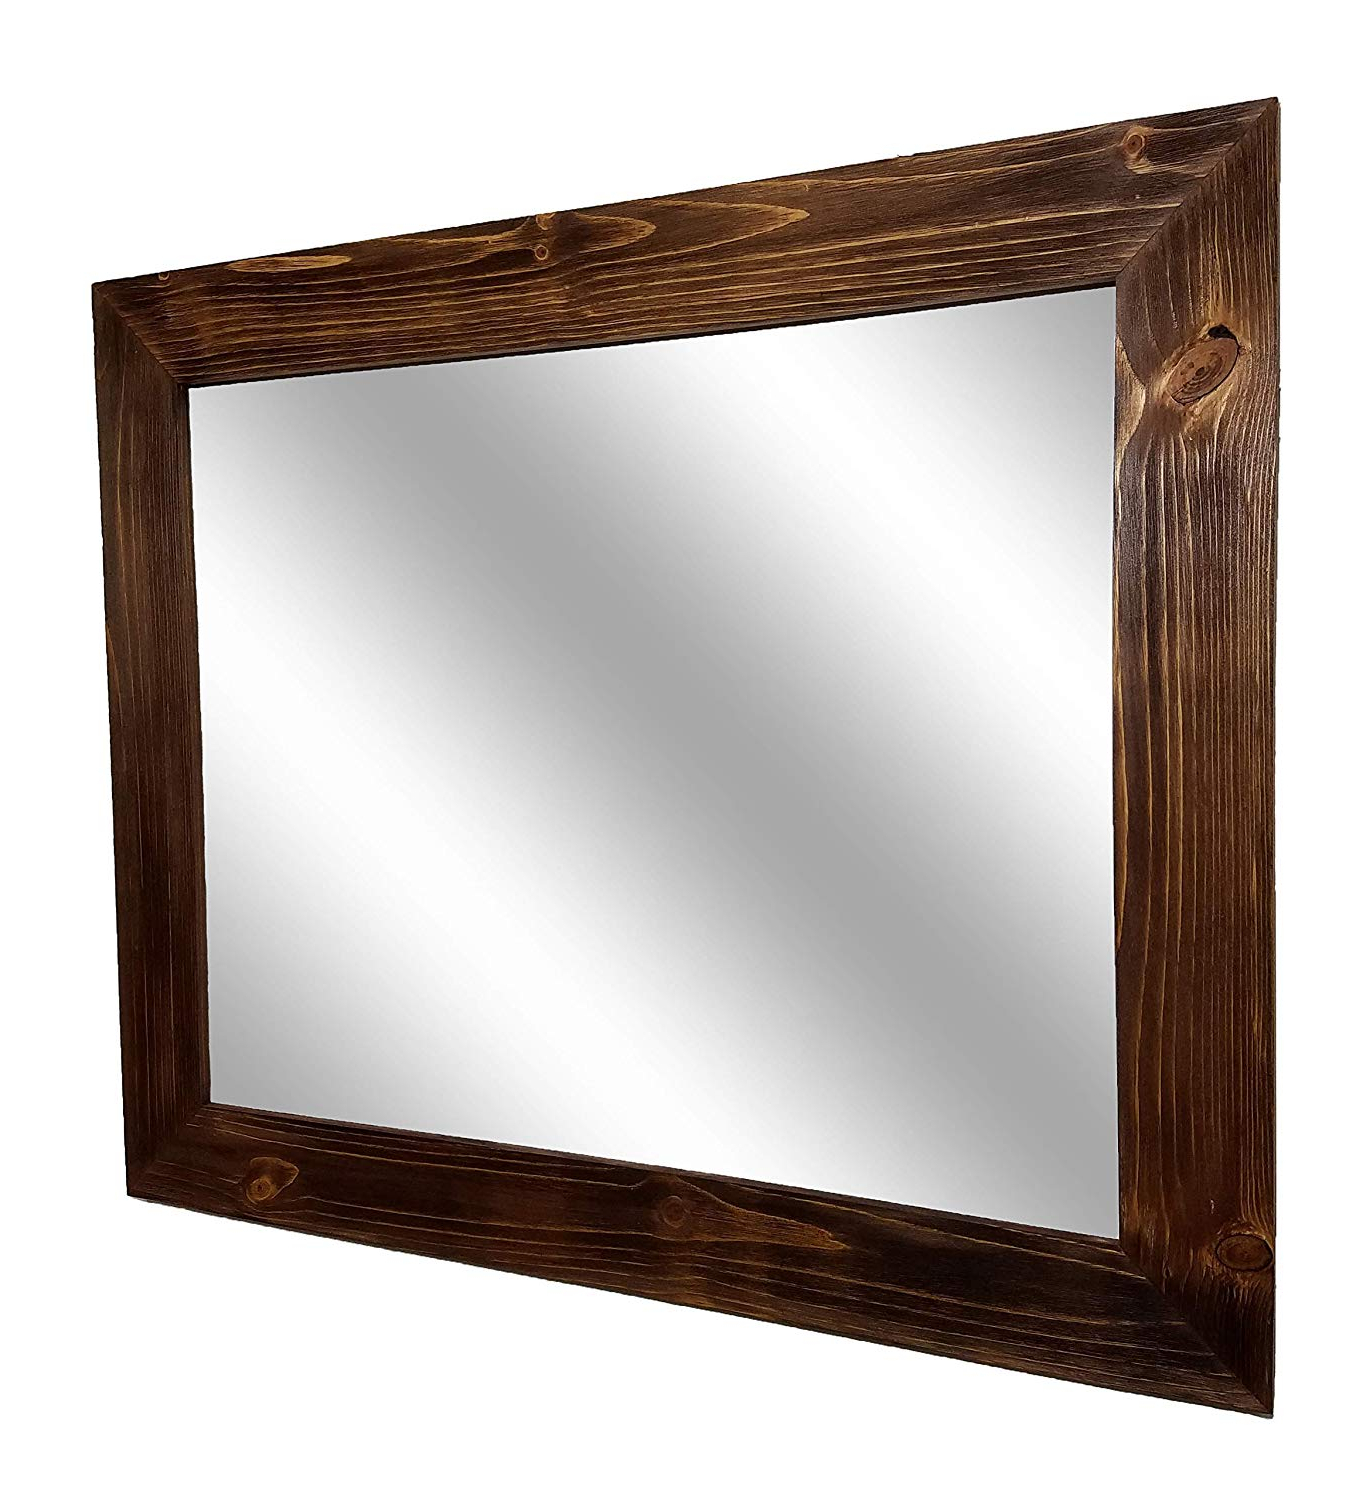 Amazon: Shiplap Large Wood Framed Mirror Available In 4 Sizes With Preferred Large Wood Framed Wall Mirrors (View 2 of 20)